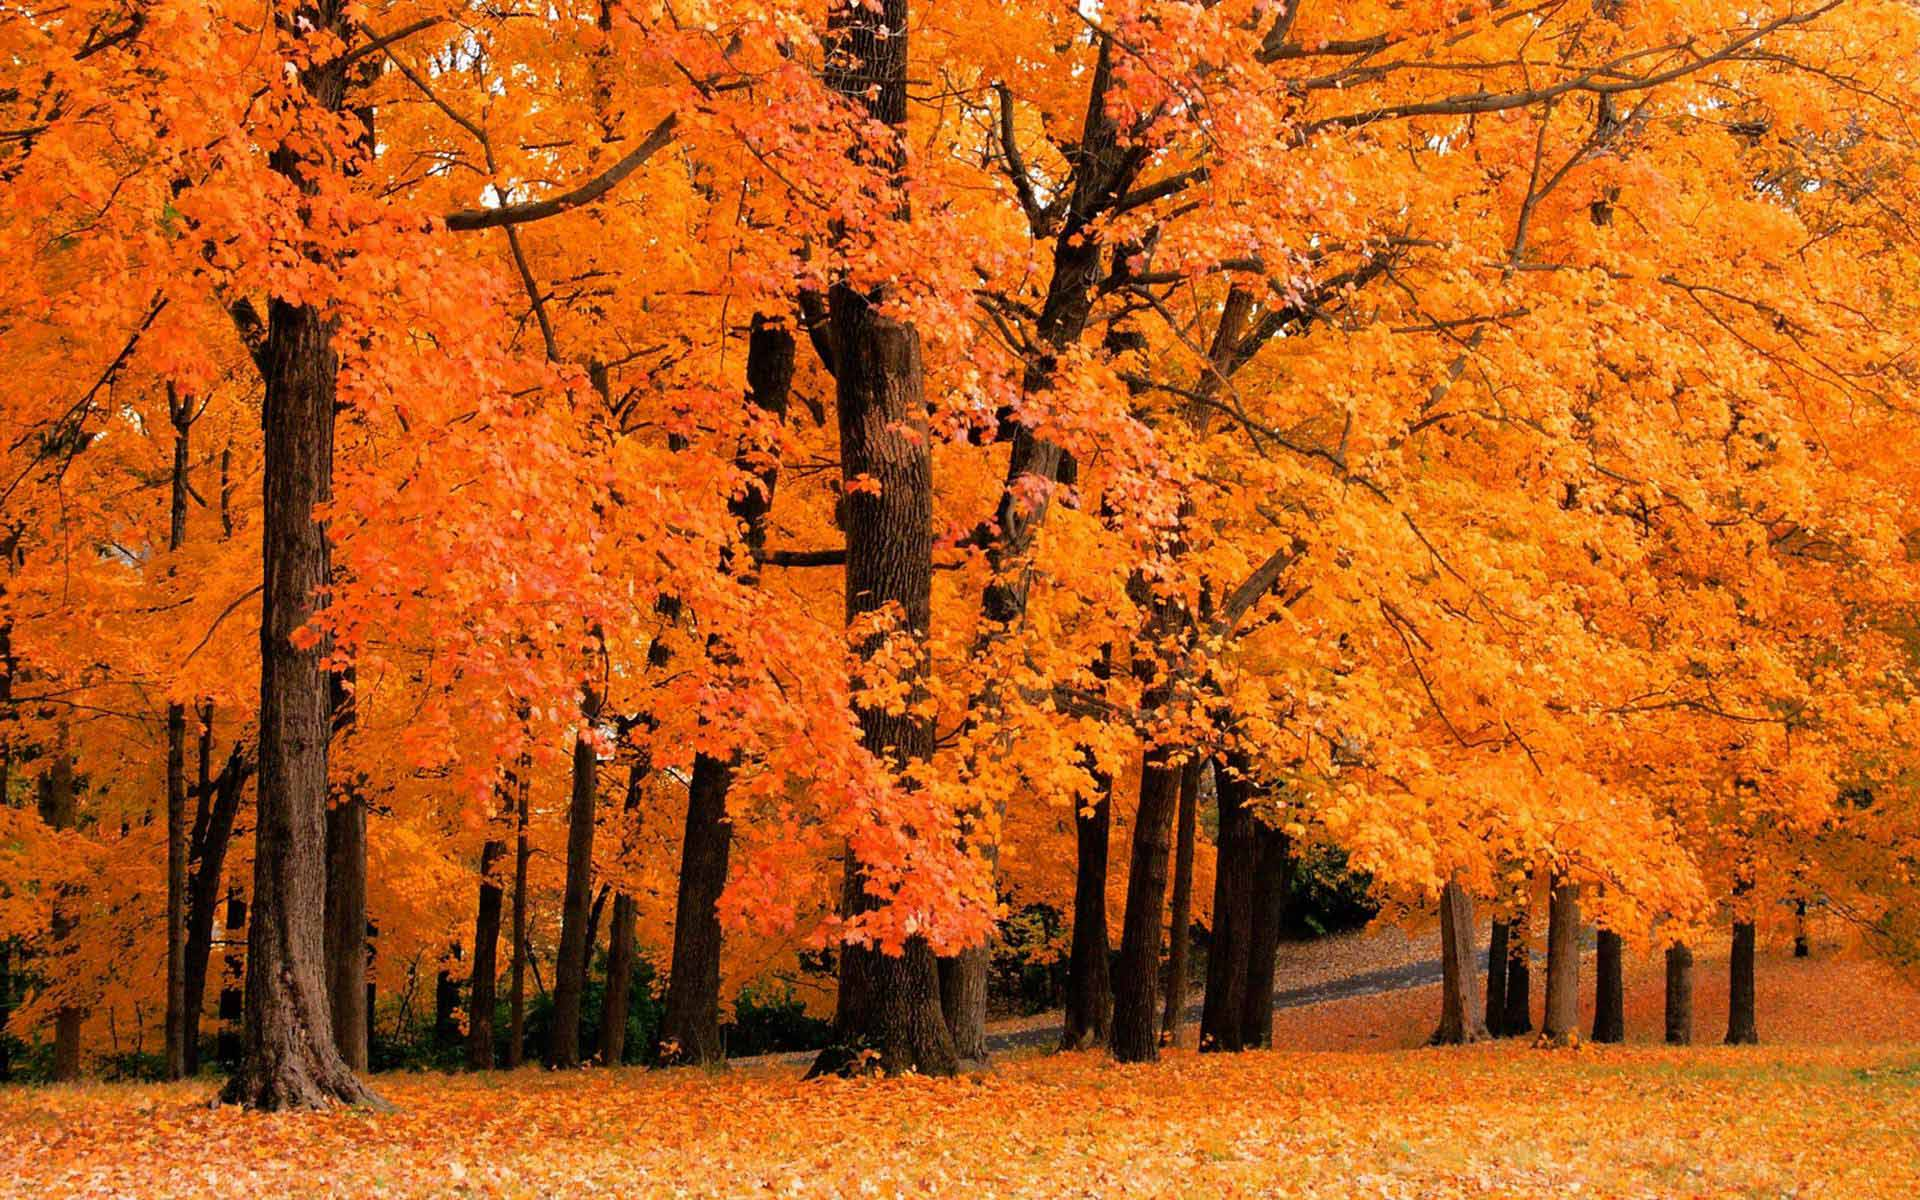 Fall Wallpapers For Desktop 8TBLG3Ljpg   Picseriocom 1920x1200